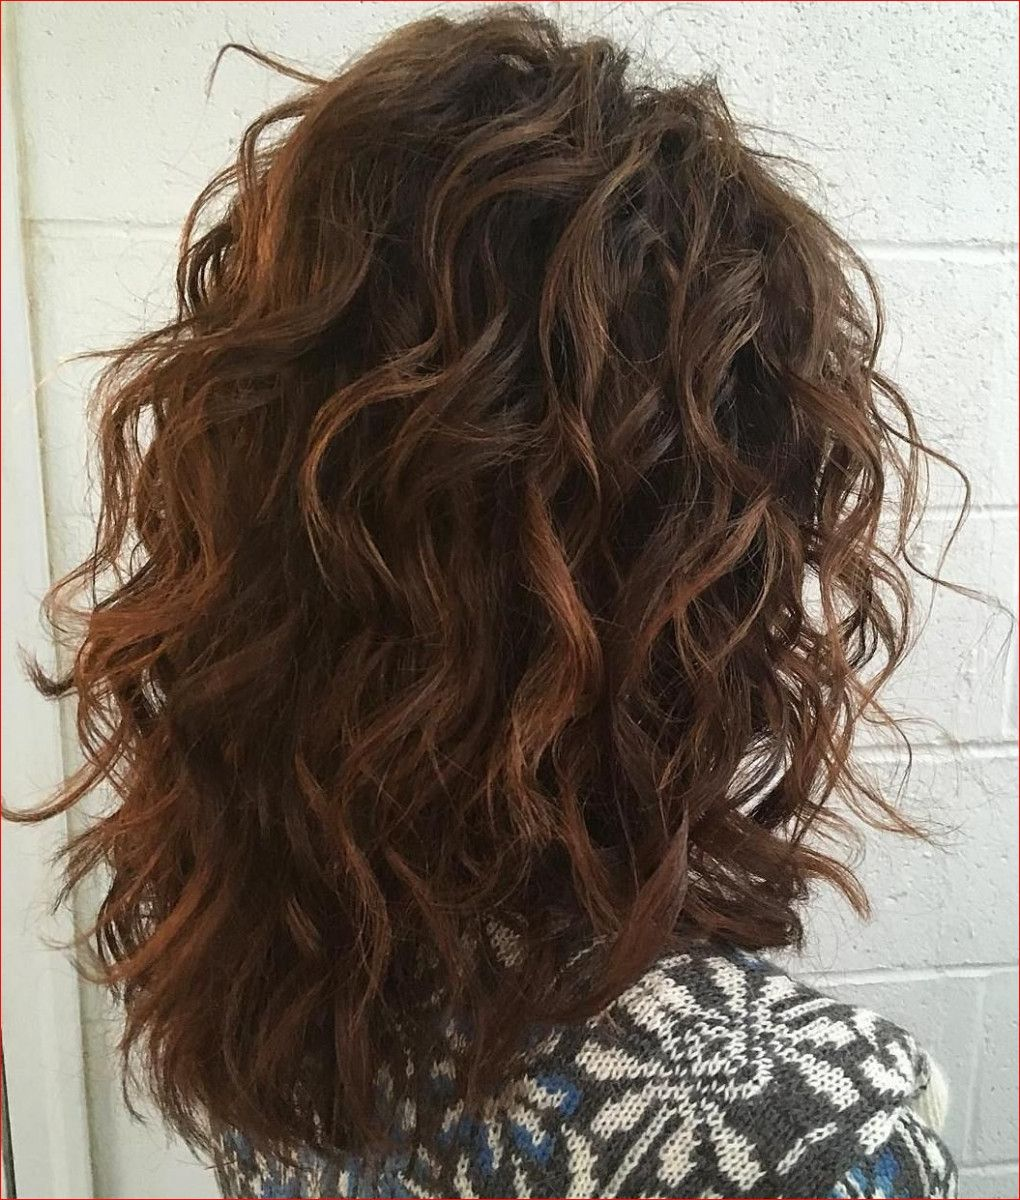 20 Amazing Layered Hairstyles For Curly Hair Best Wedding Hair Styles Thick Wavy Hair Natural Wavy Hair Haircut For Thick Hair